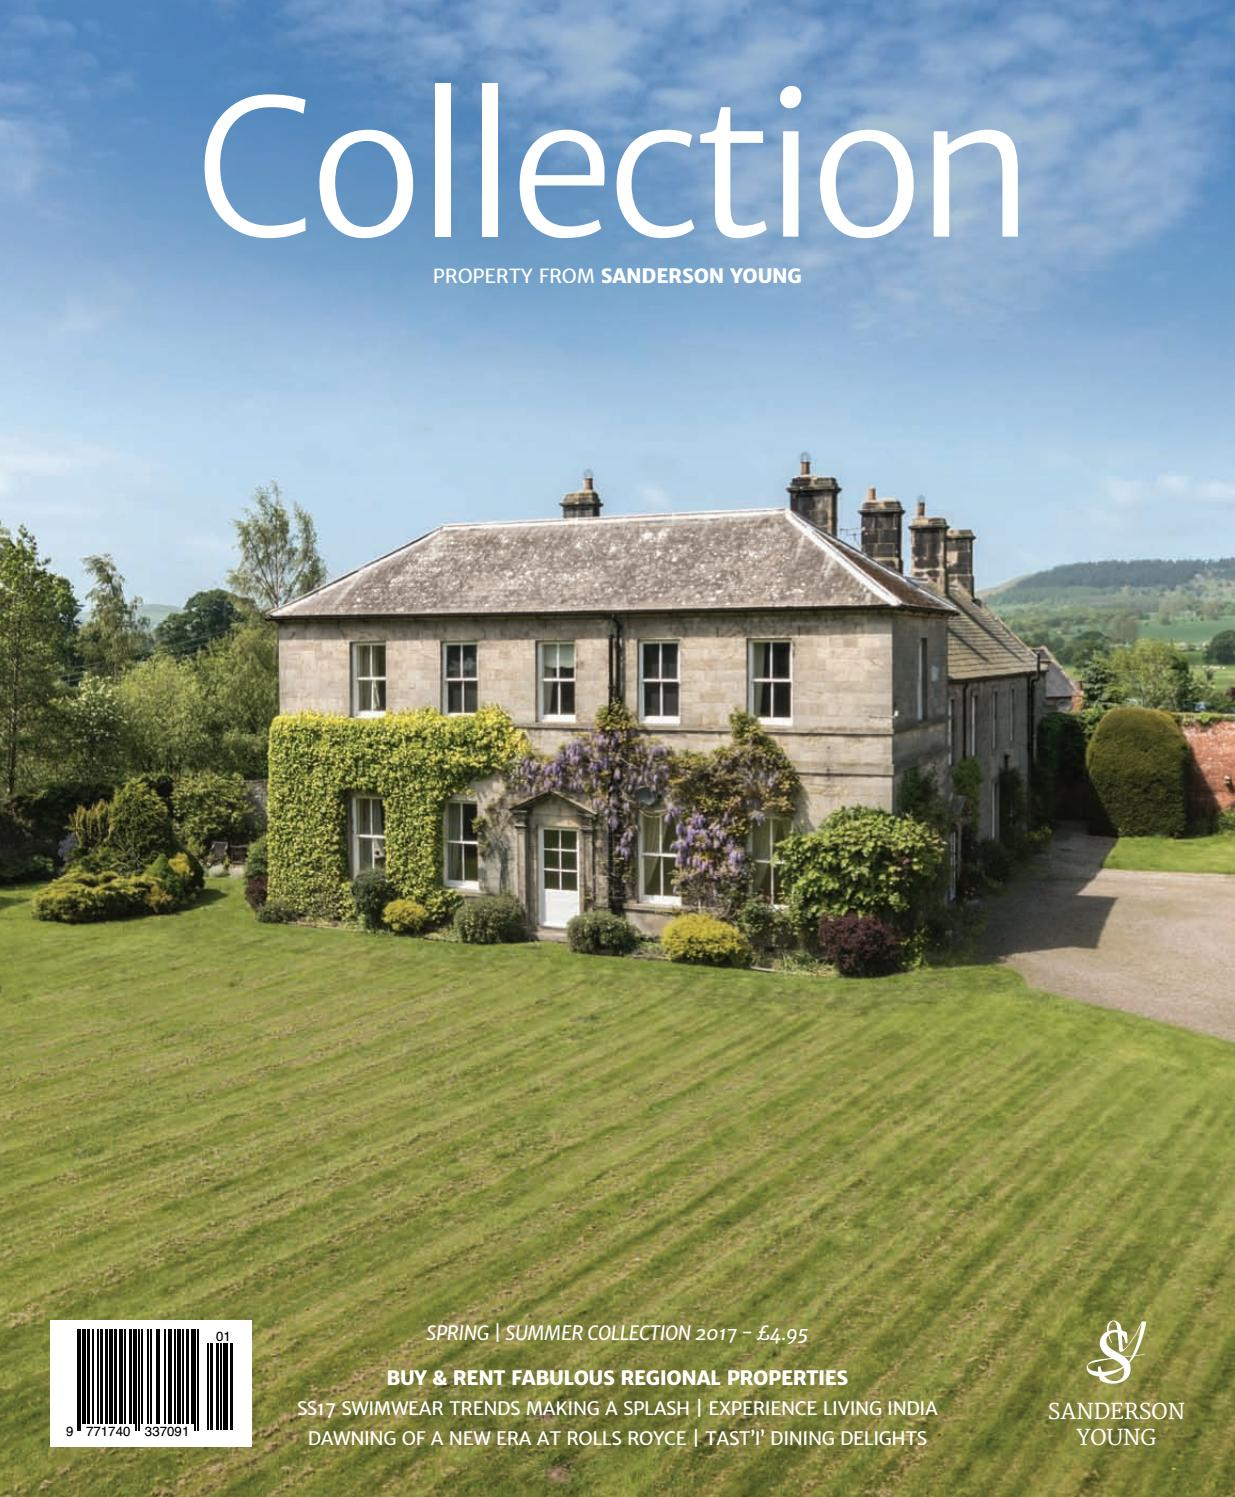 a87392adb0a9 Collection from Sanderson Young by Sanderson Young - issuu